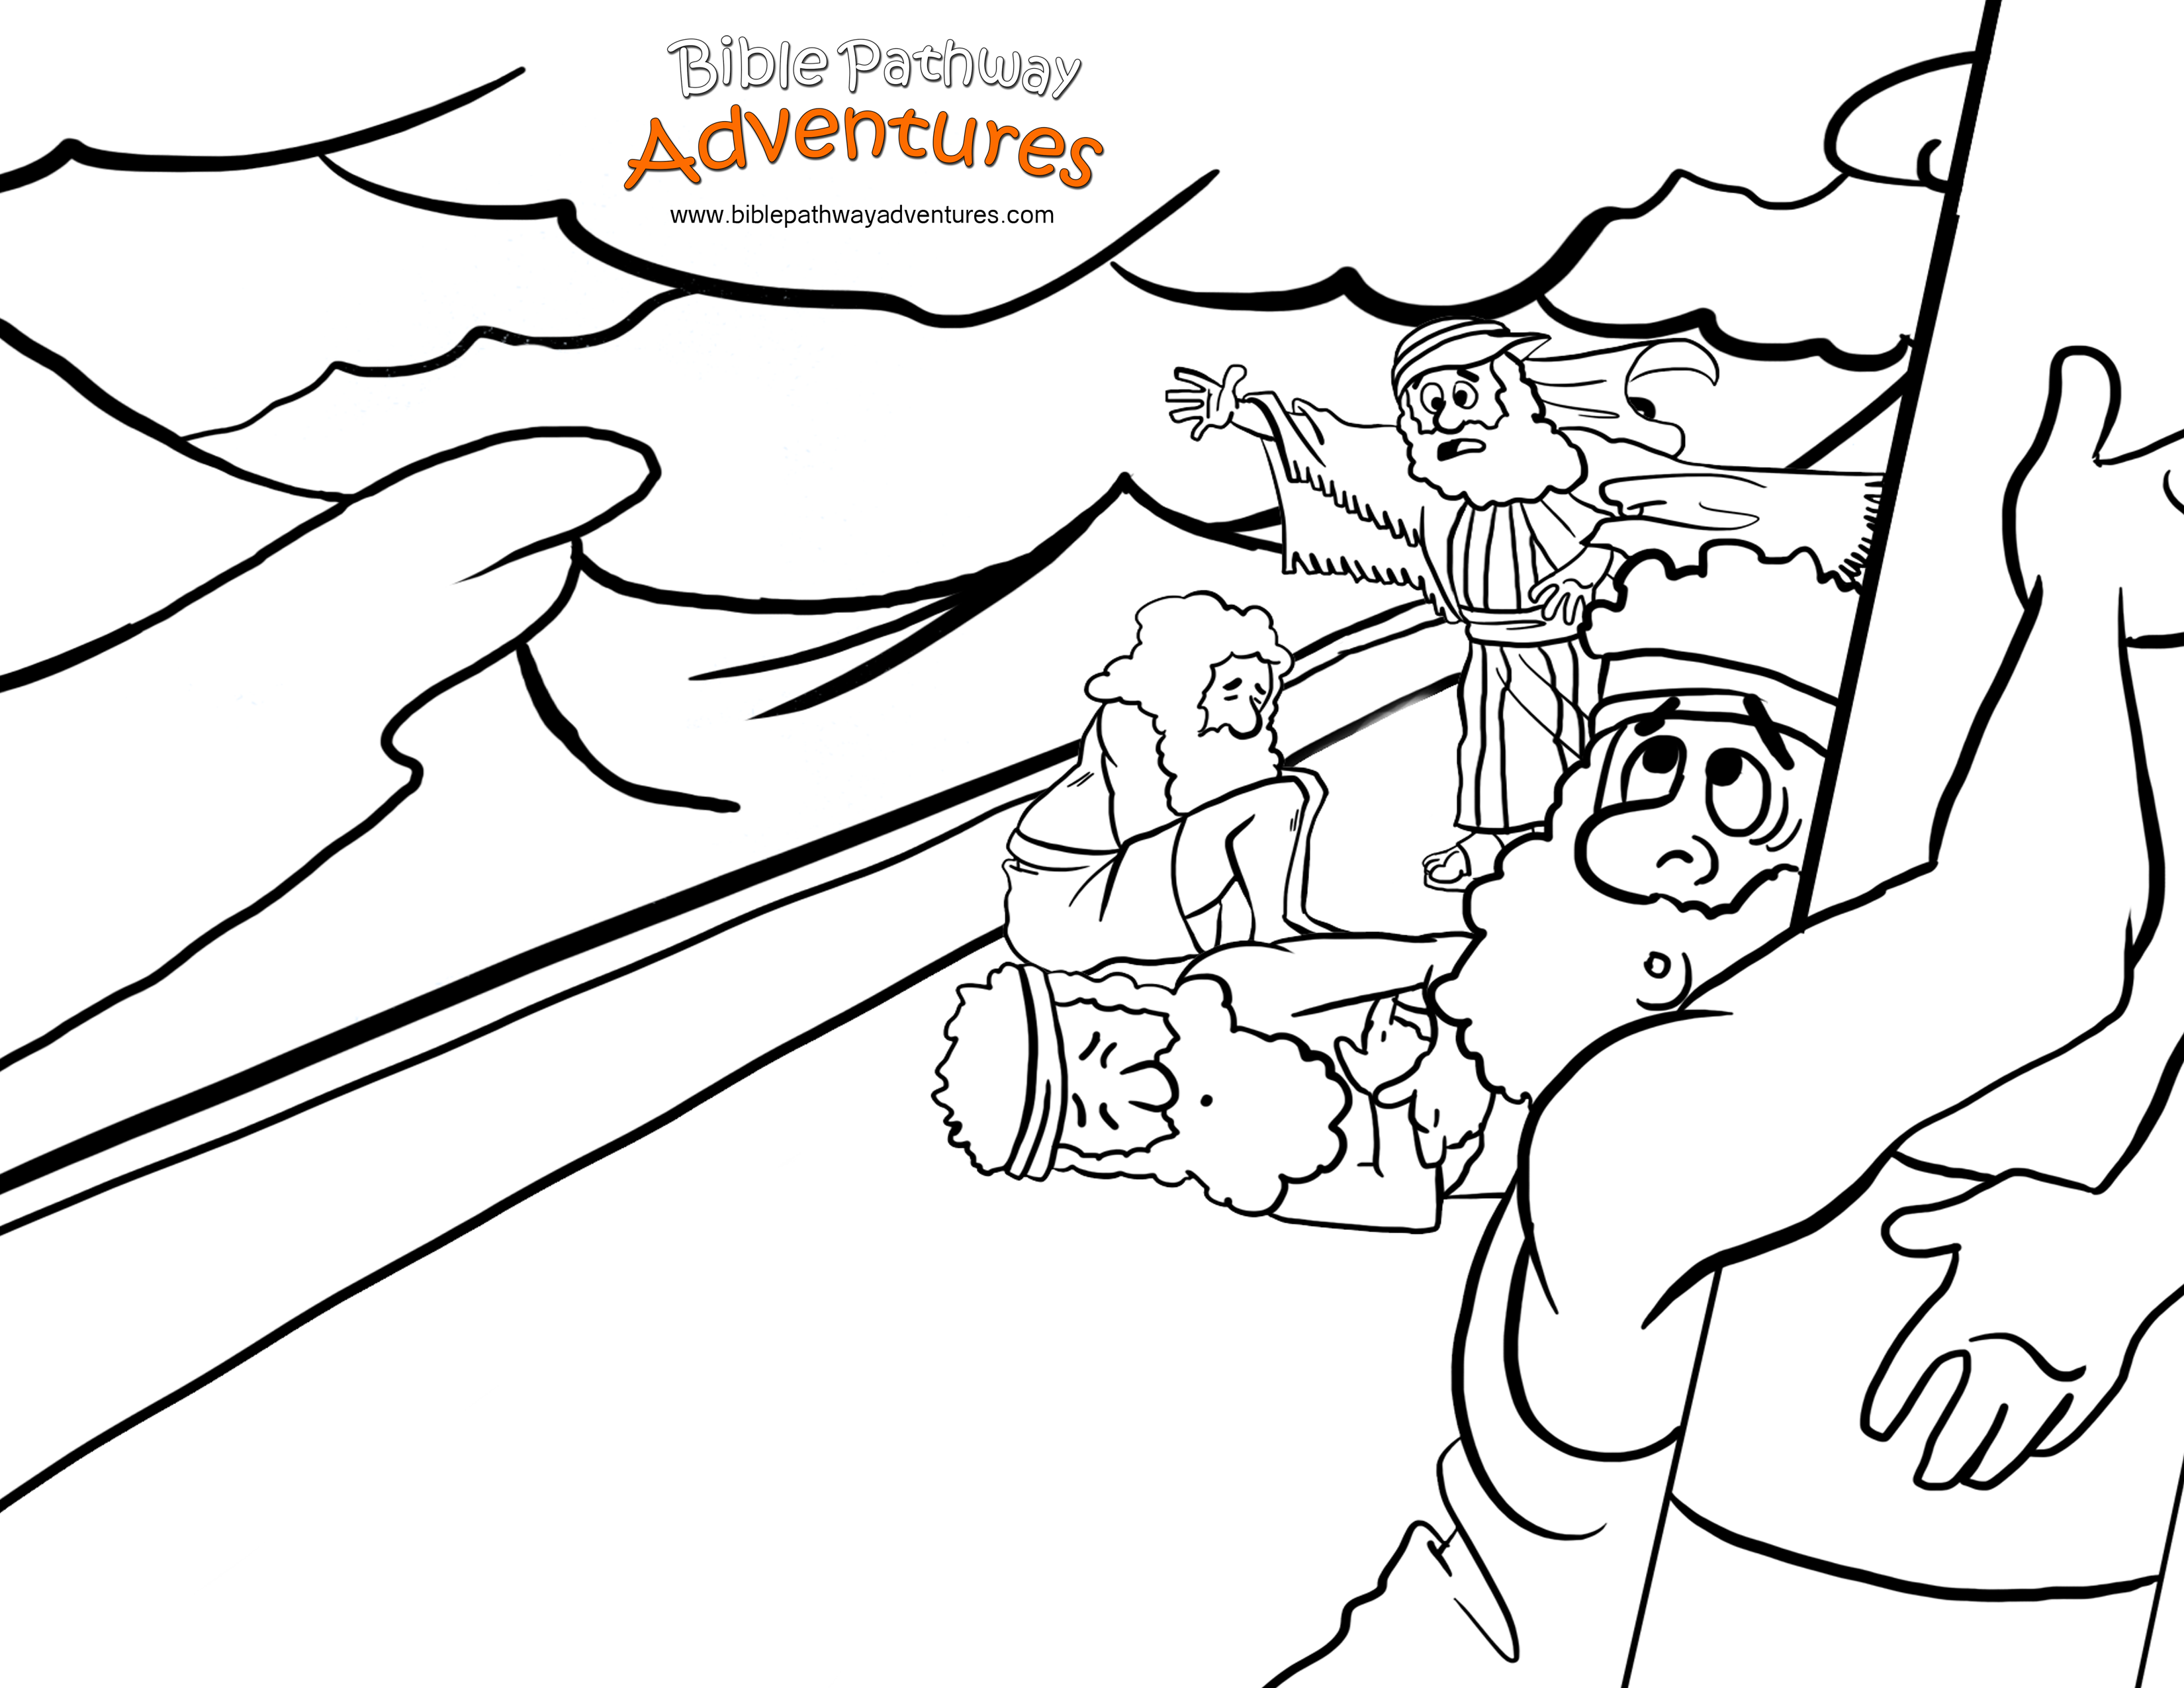 Childrens coloring sheet of saul and ananias - Paul